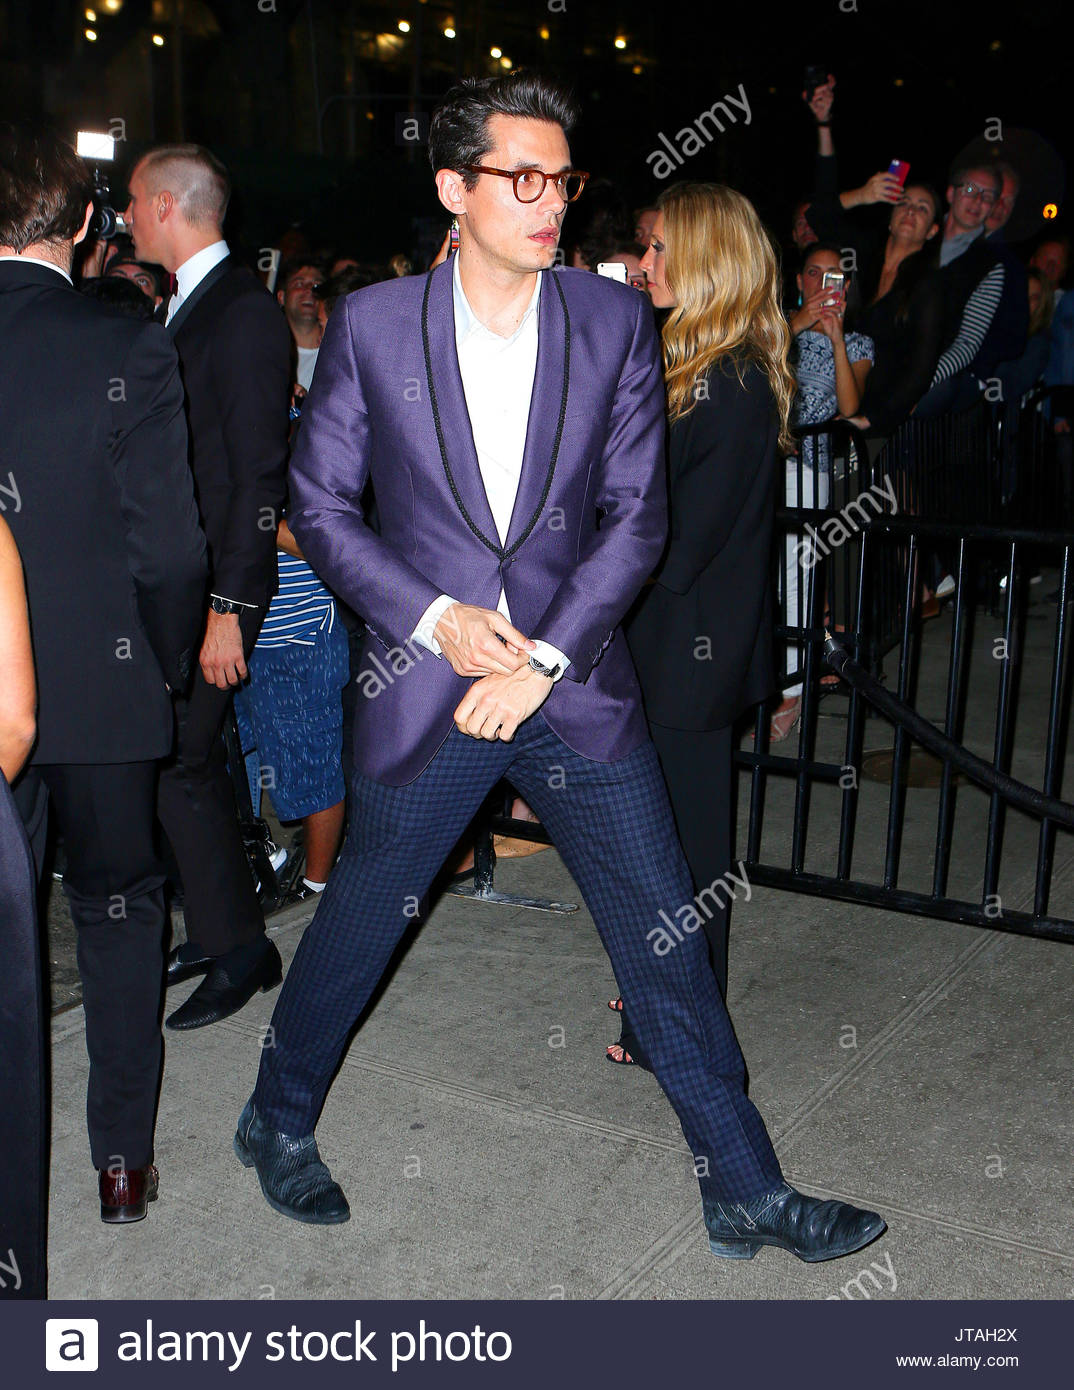 Katy Perry and John Mayer Party Pre-New Years Together